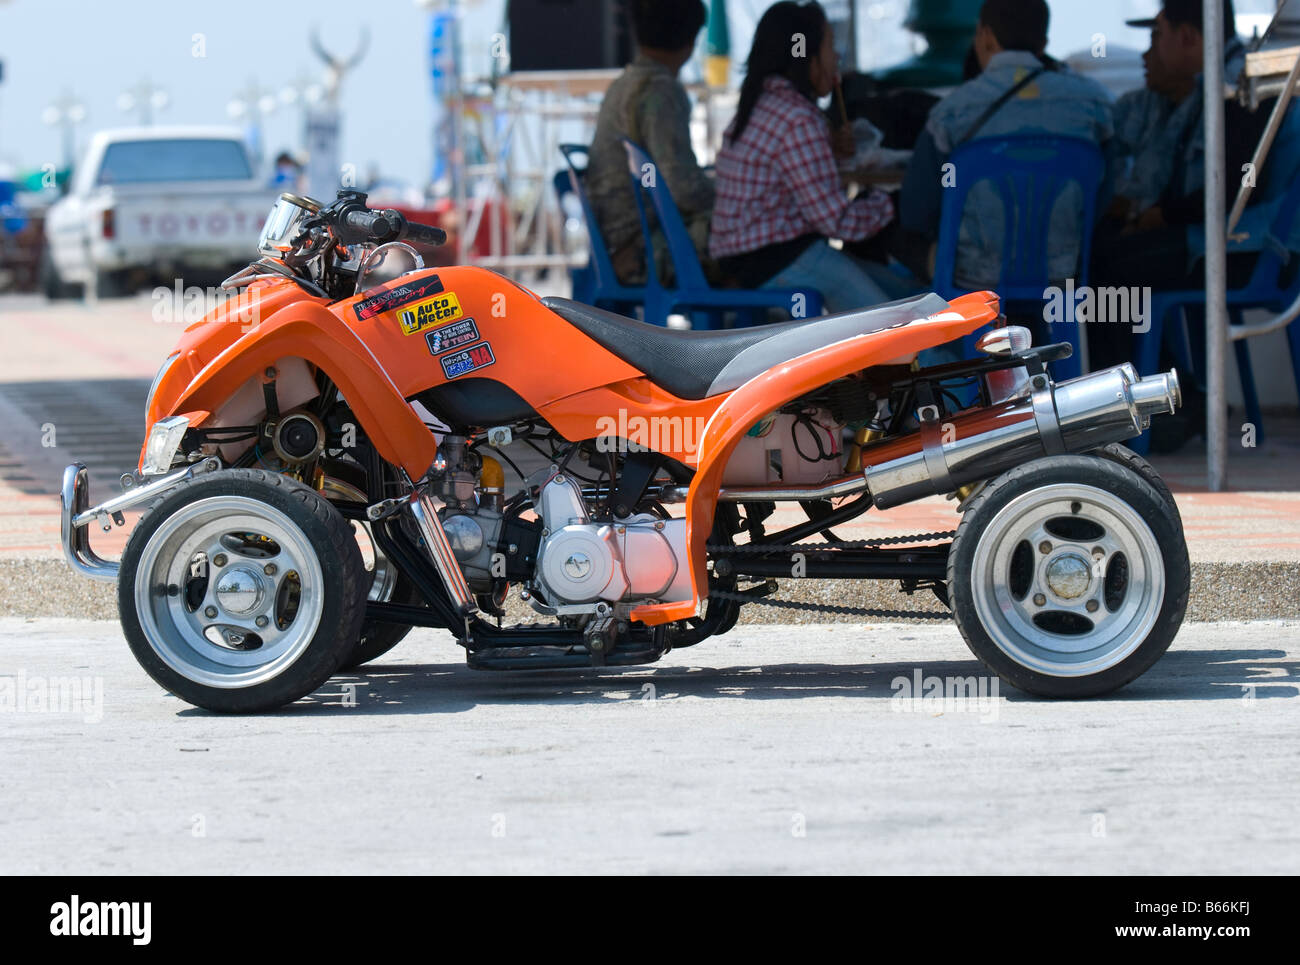 motorcycle modified images  Modified Motorbike Stock Photos